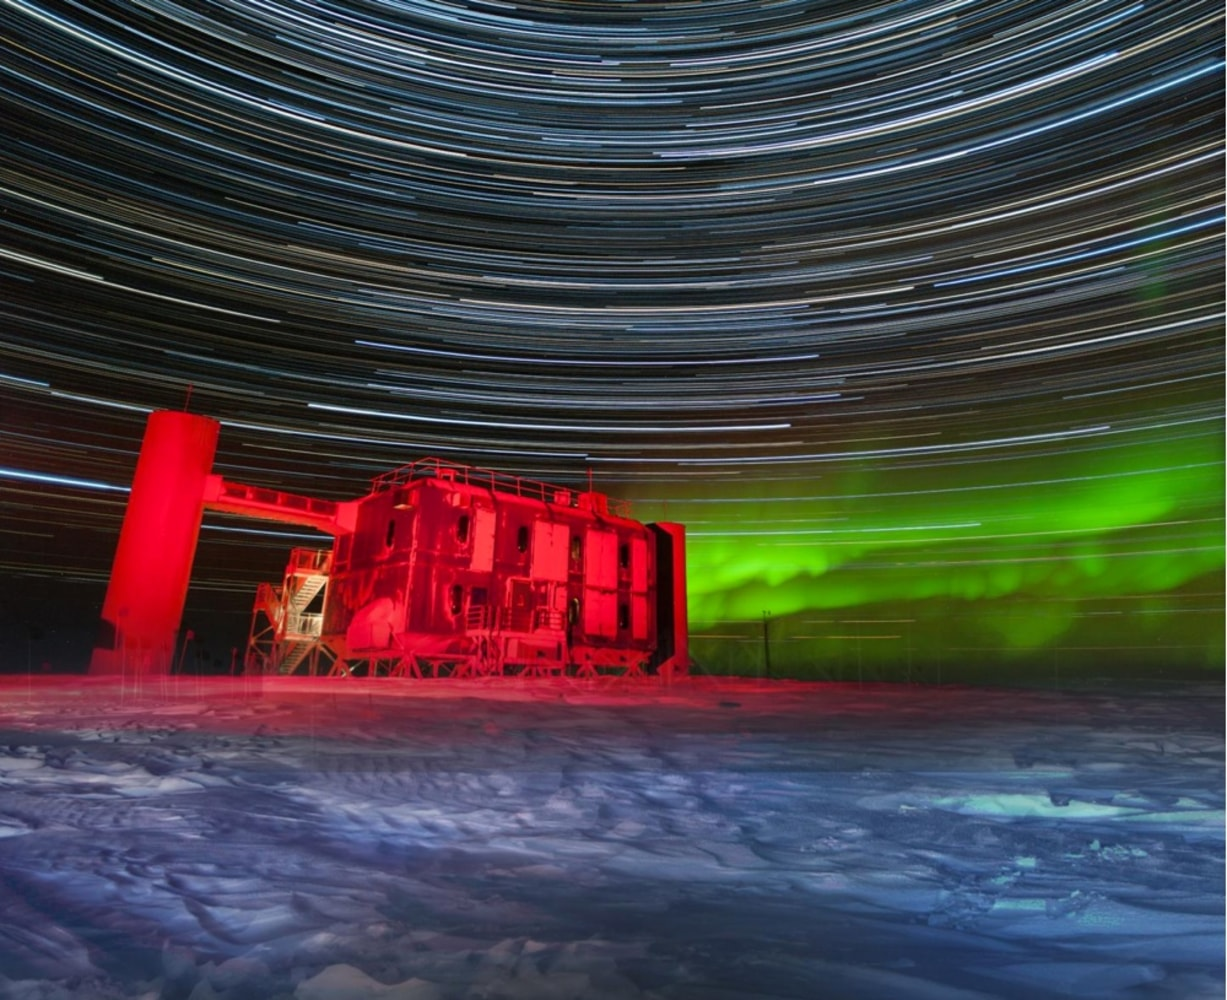 Antarctica Scientists Confirm Existence of Cosmic ...Icecube Neutrino Observatory July